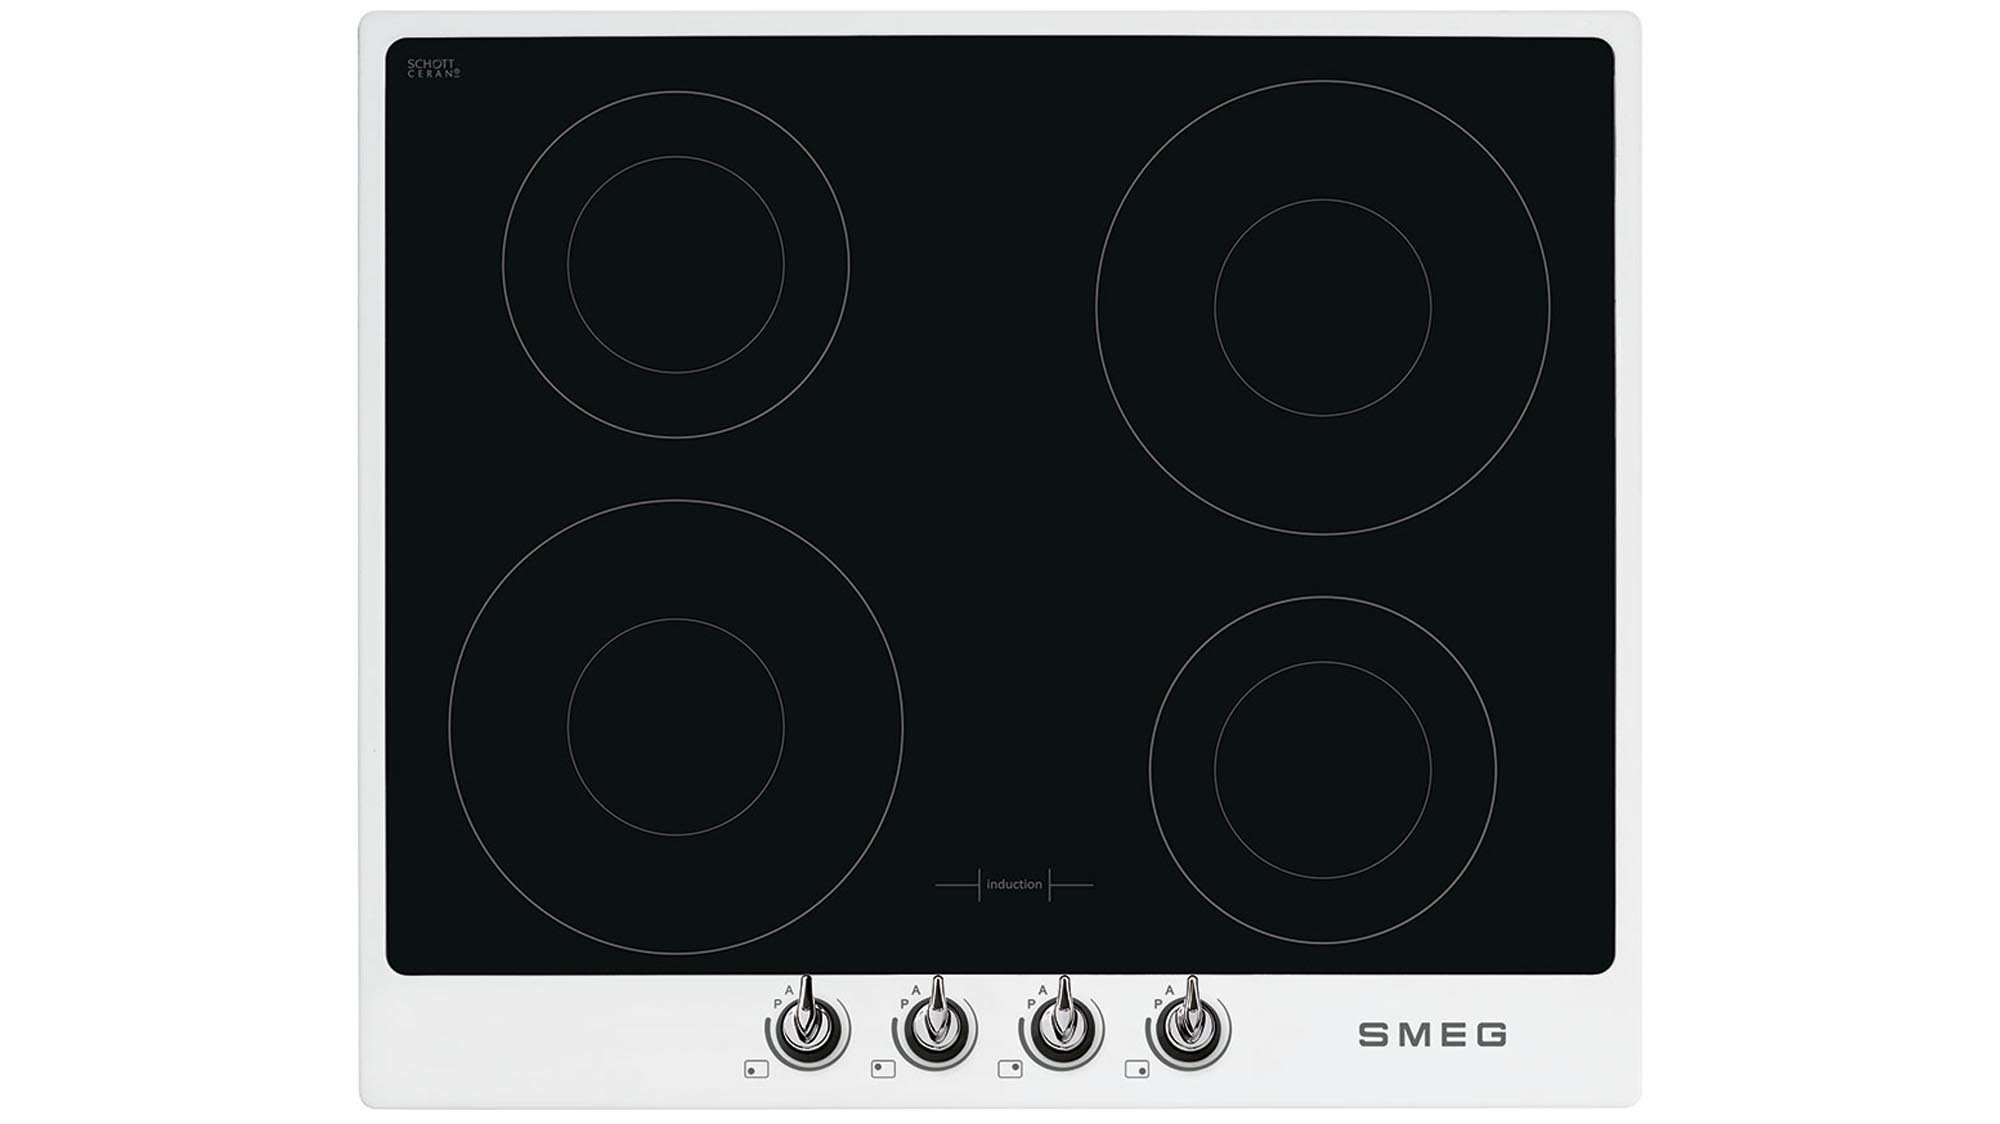 Induction hob 163 45 00 28 images hendi induction for Induktionsherd neff